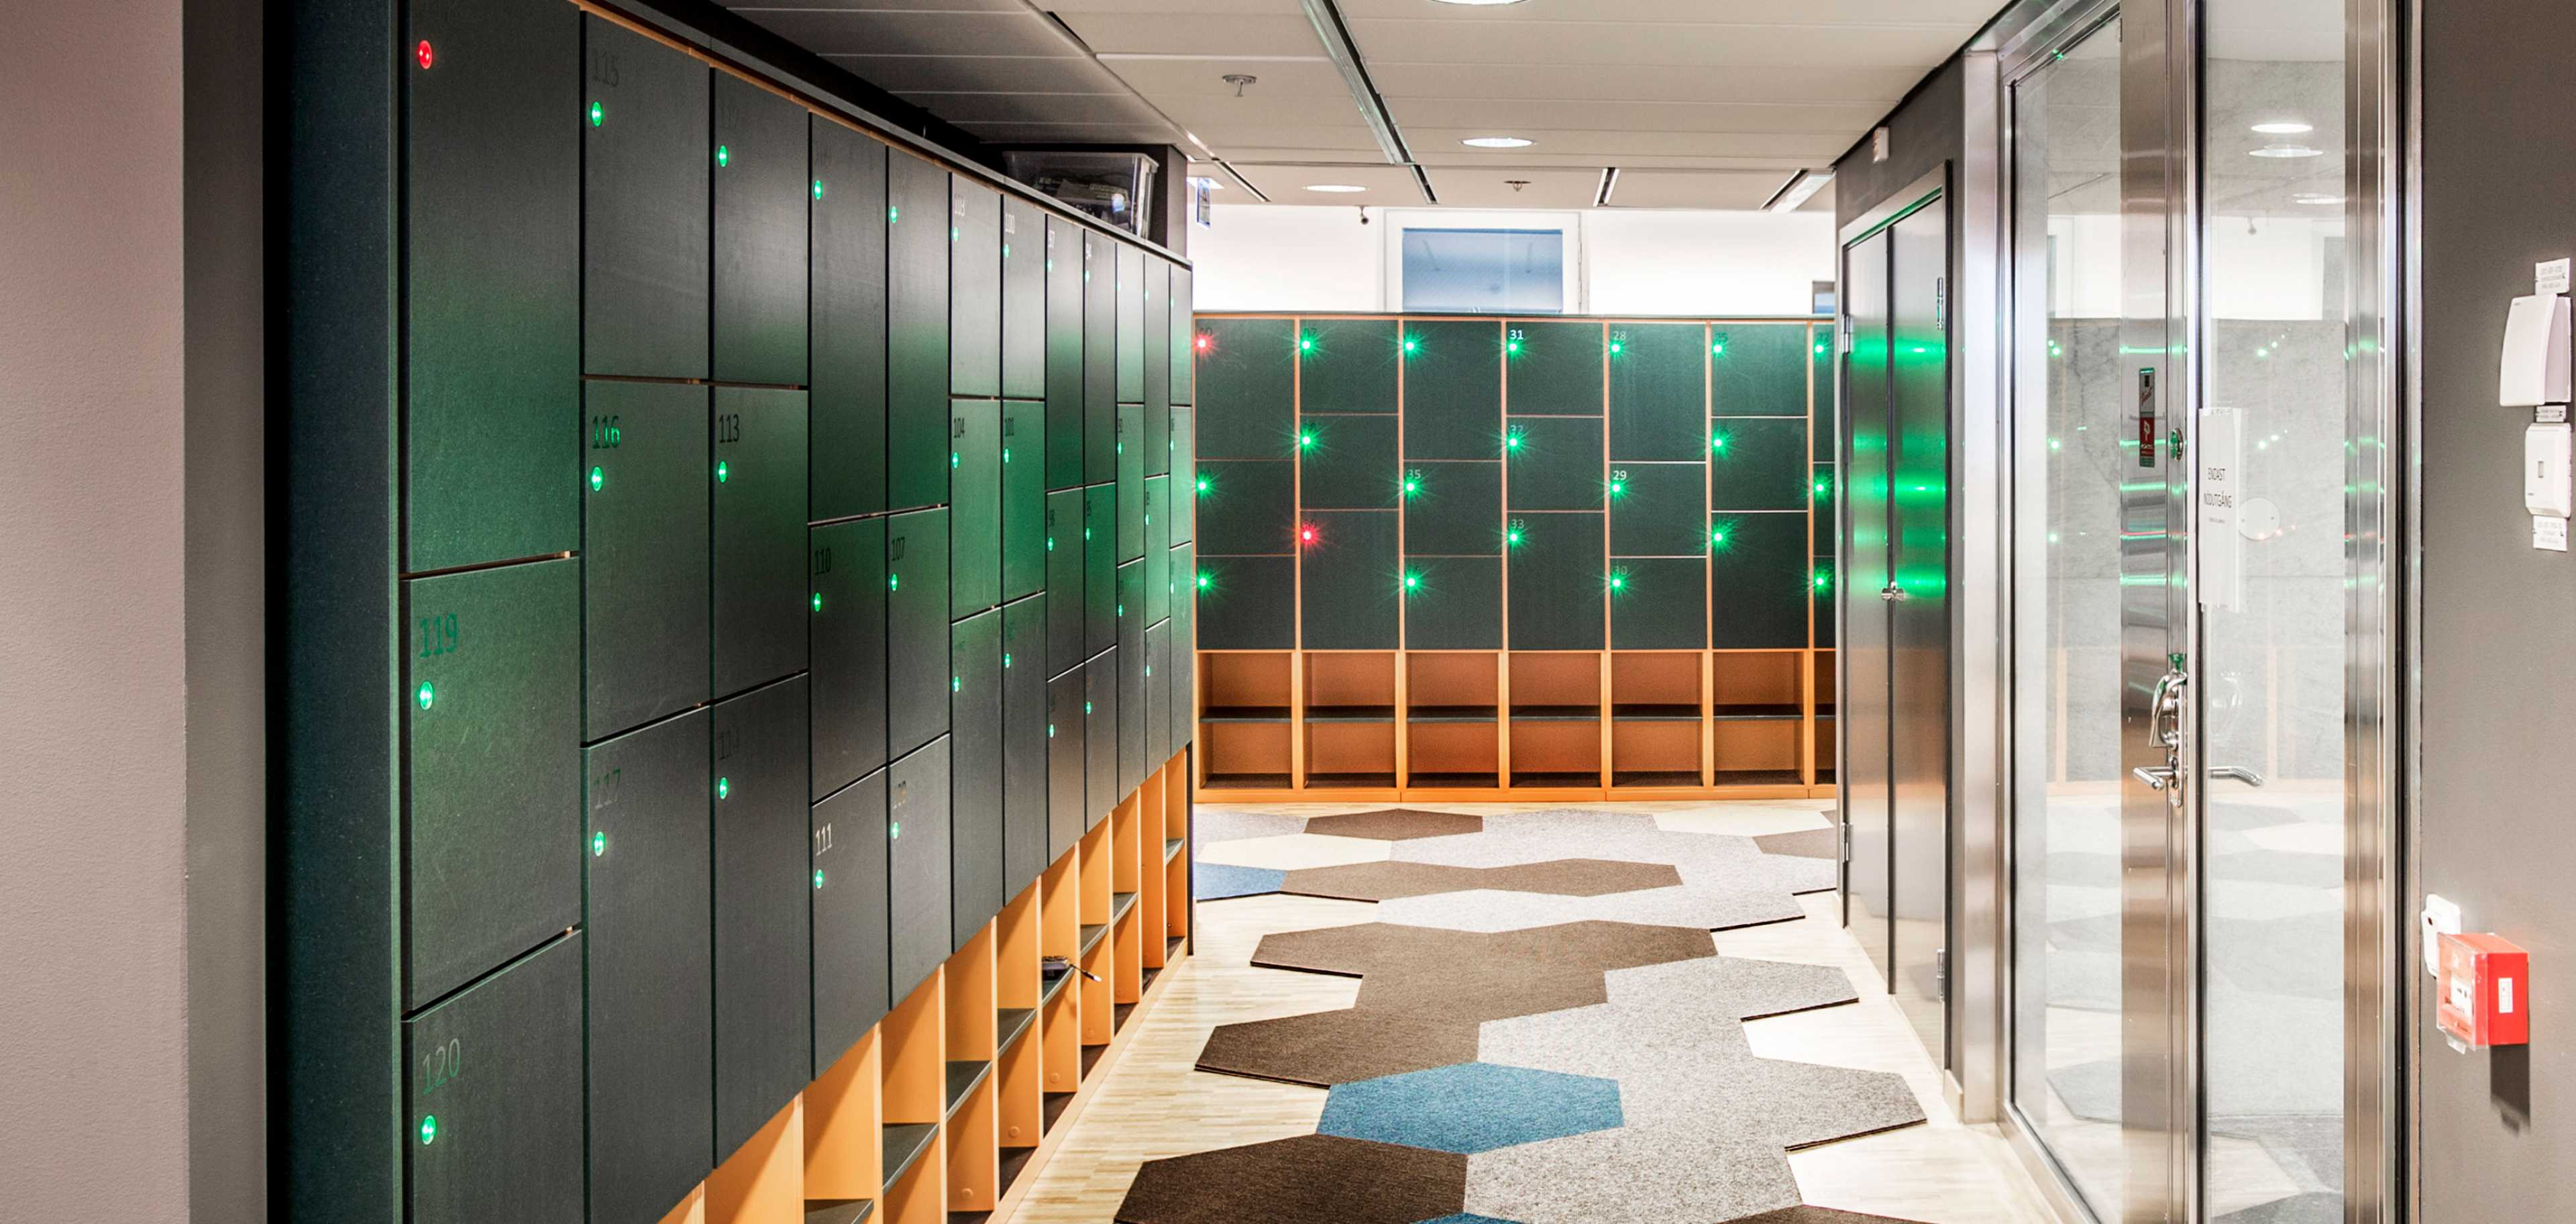 Martela Dynamic Storage at Cybercom's office in Stockholm